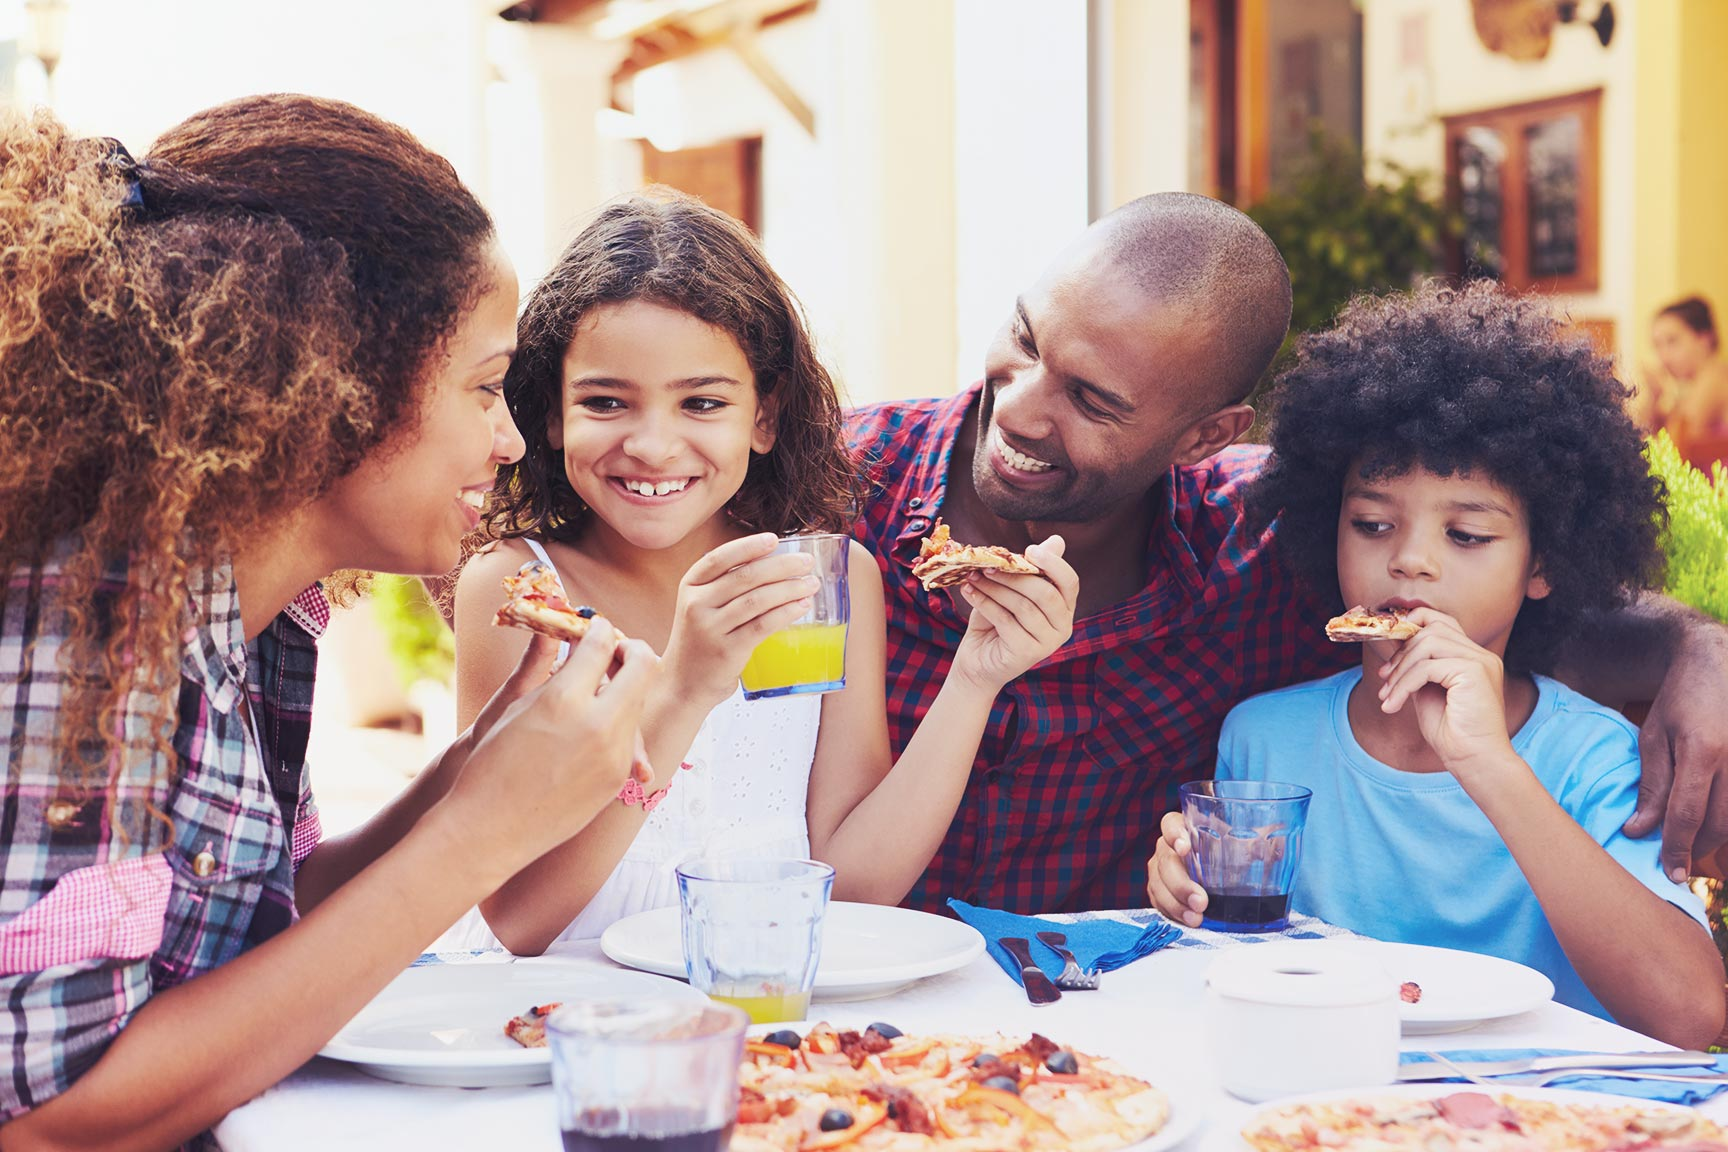 Family Day – A Day to Eat Dinner with Your Children